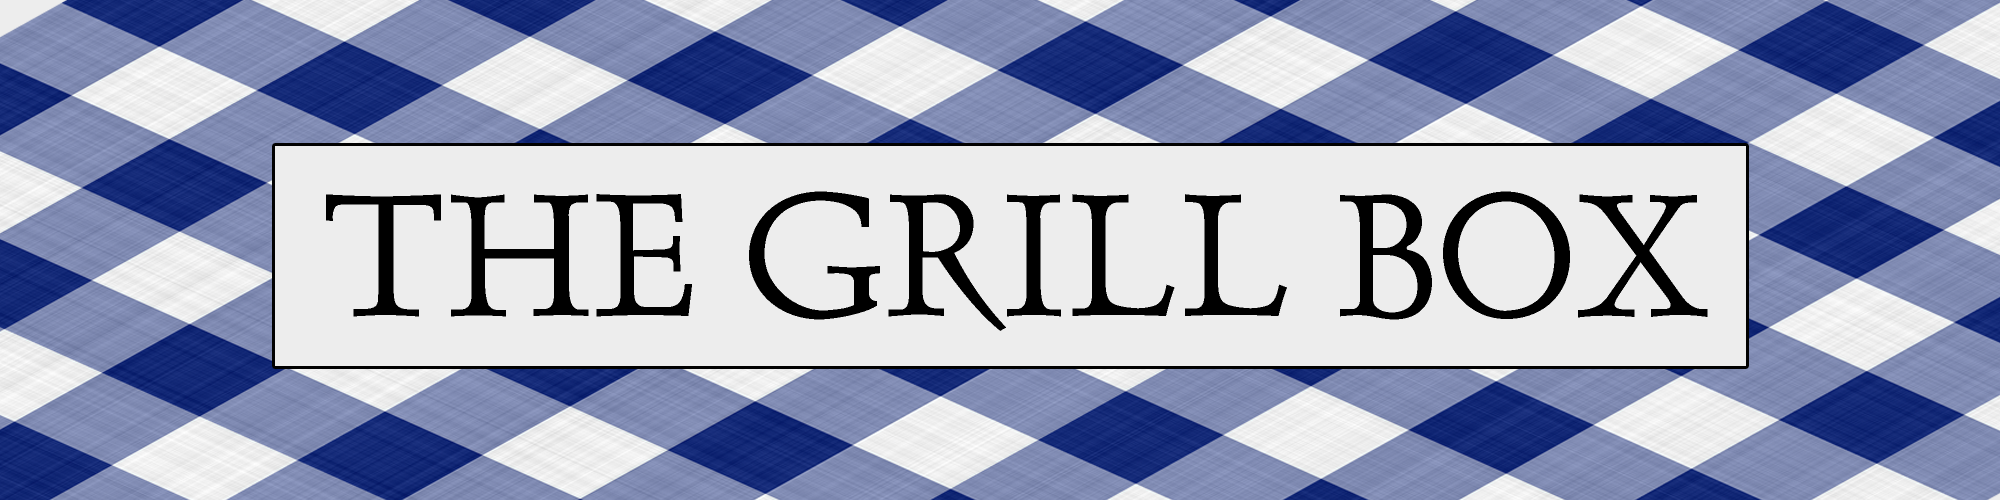 The Grill Box